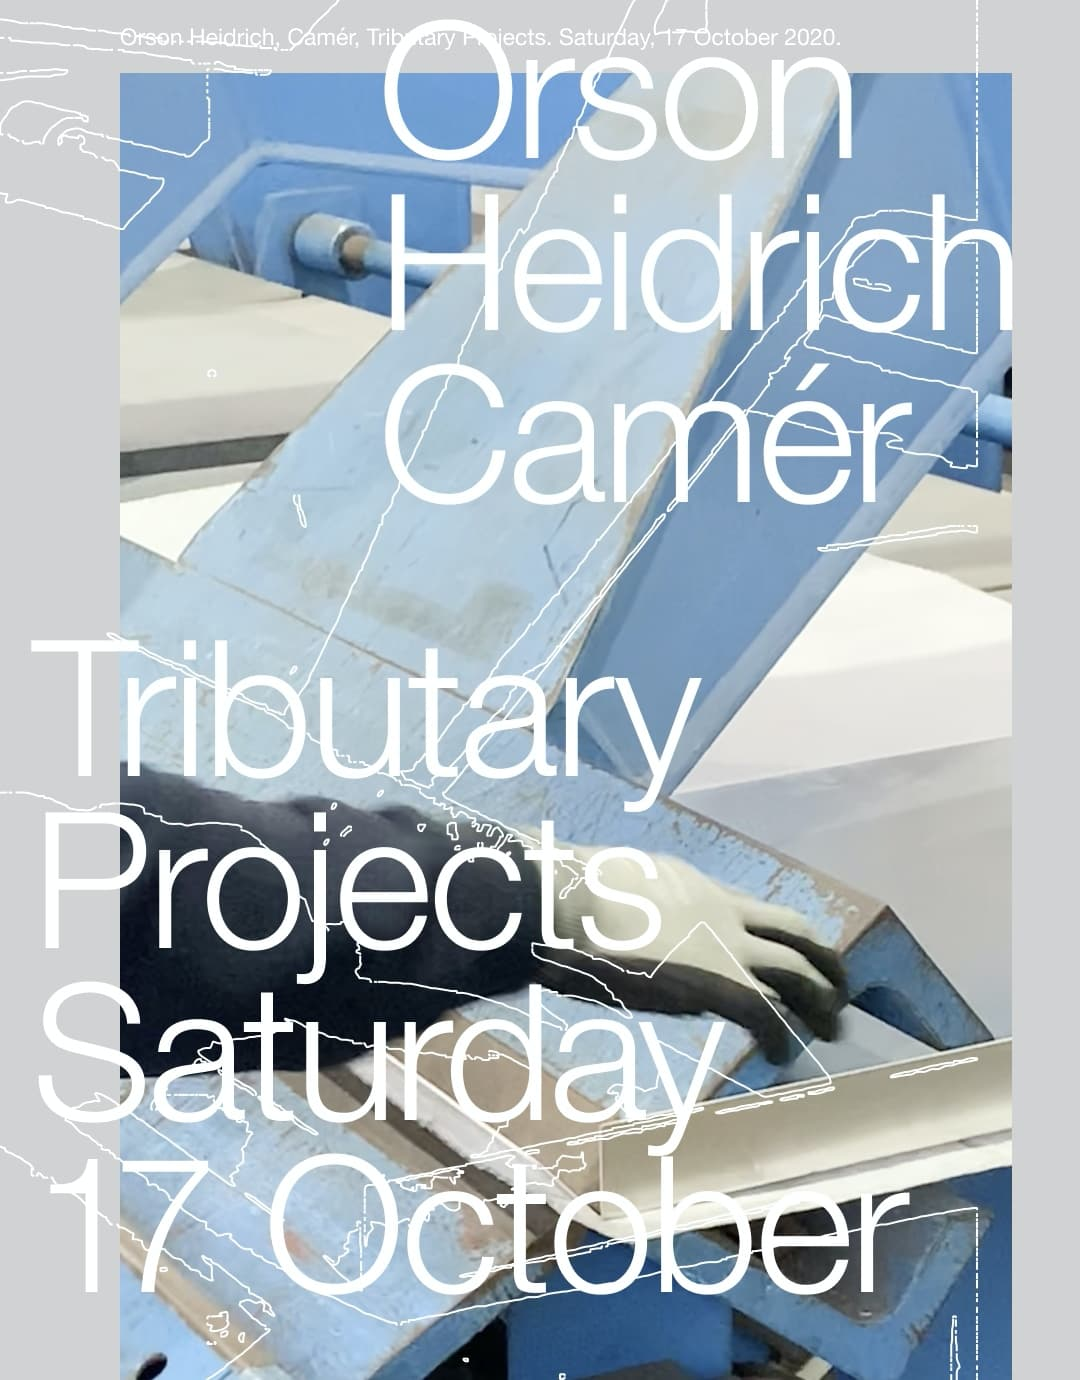 Orson Heidrich Camer digital exhibition flyer one